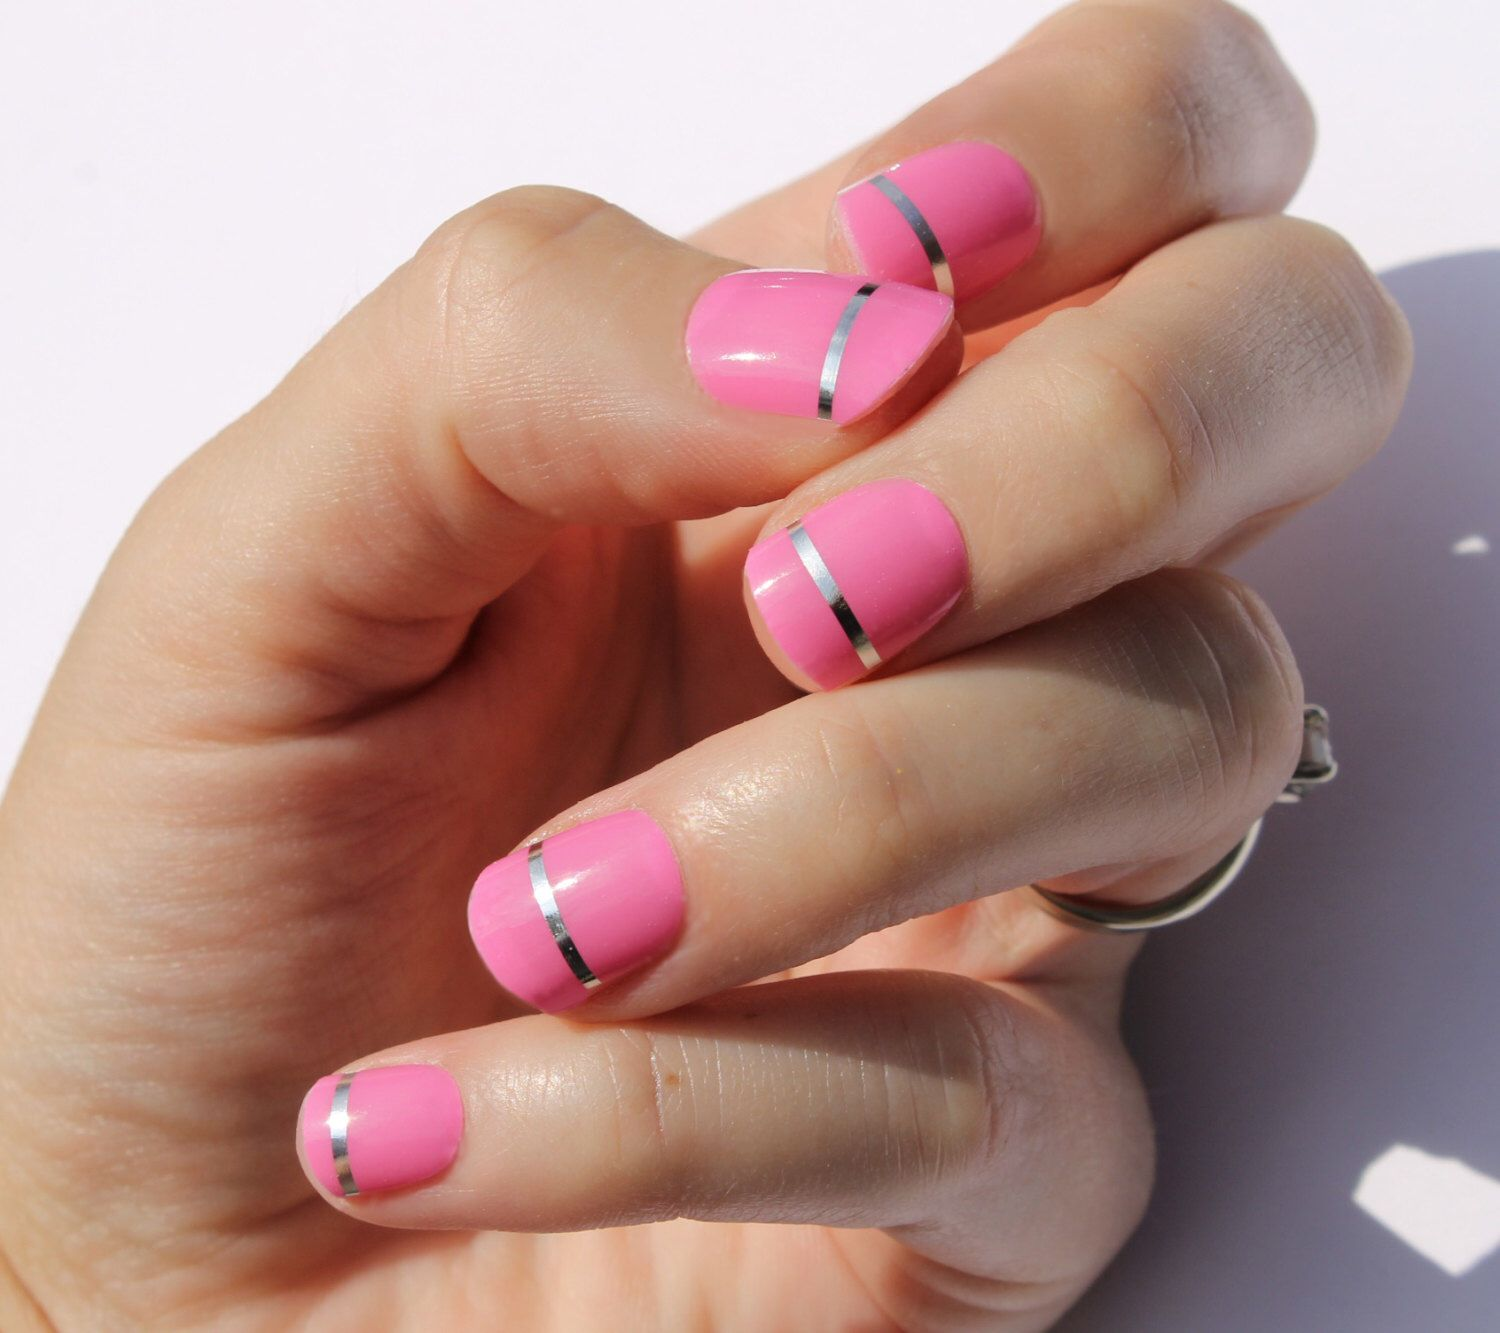 Pink Lola Nail Wraps by SoGloss on Etsy https://www.etsy.com/listing ...